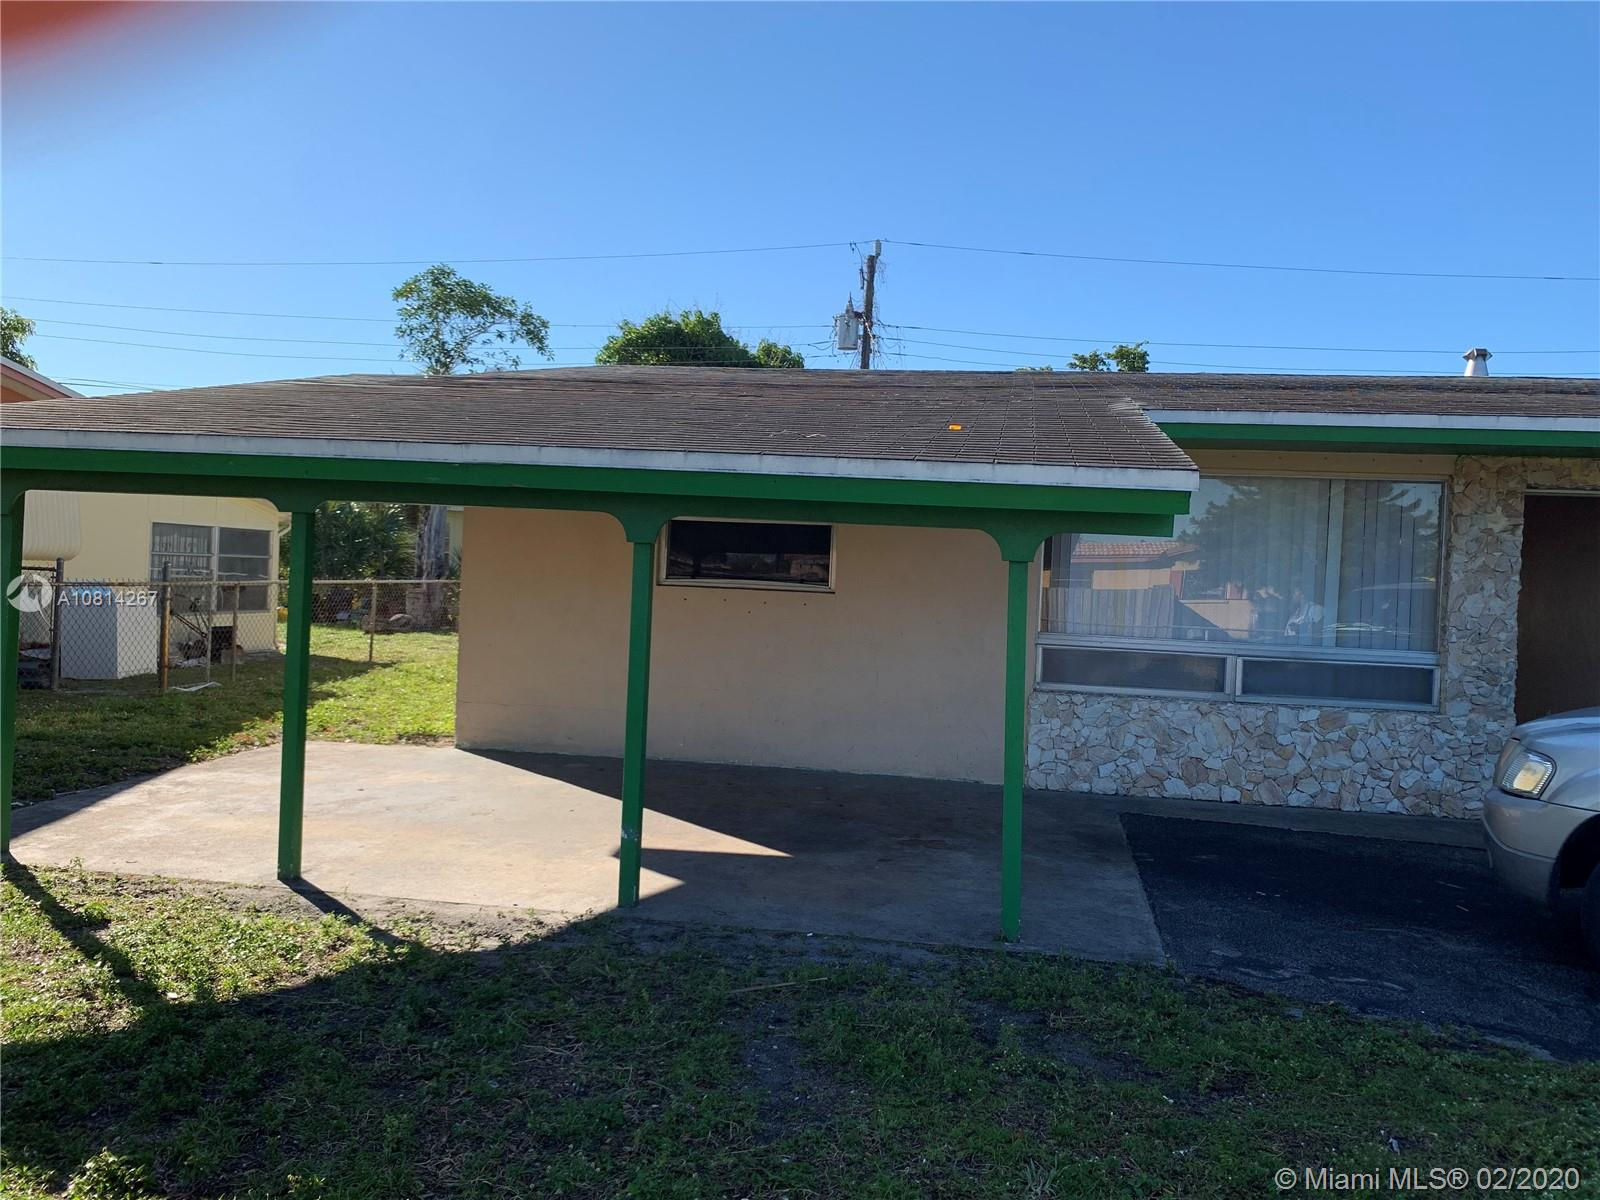 SINGLE FAMILY 3 BEDROOMS AND 2 BATHROOMS /2 NEAR SCHOOLS AND STORES .QUIET NEIGHBORHOOD- ROOF IN GOOD CONDITION TO BE SOLD AS IT